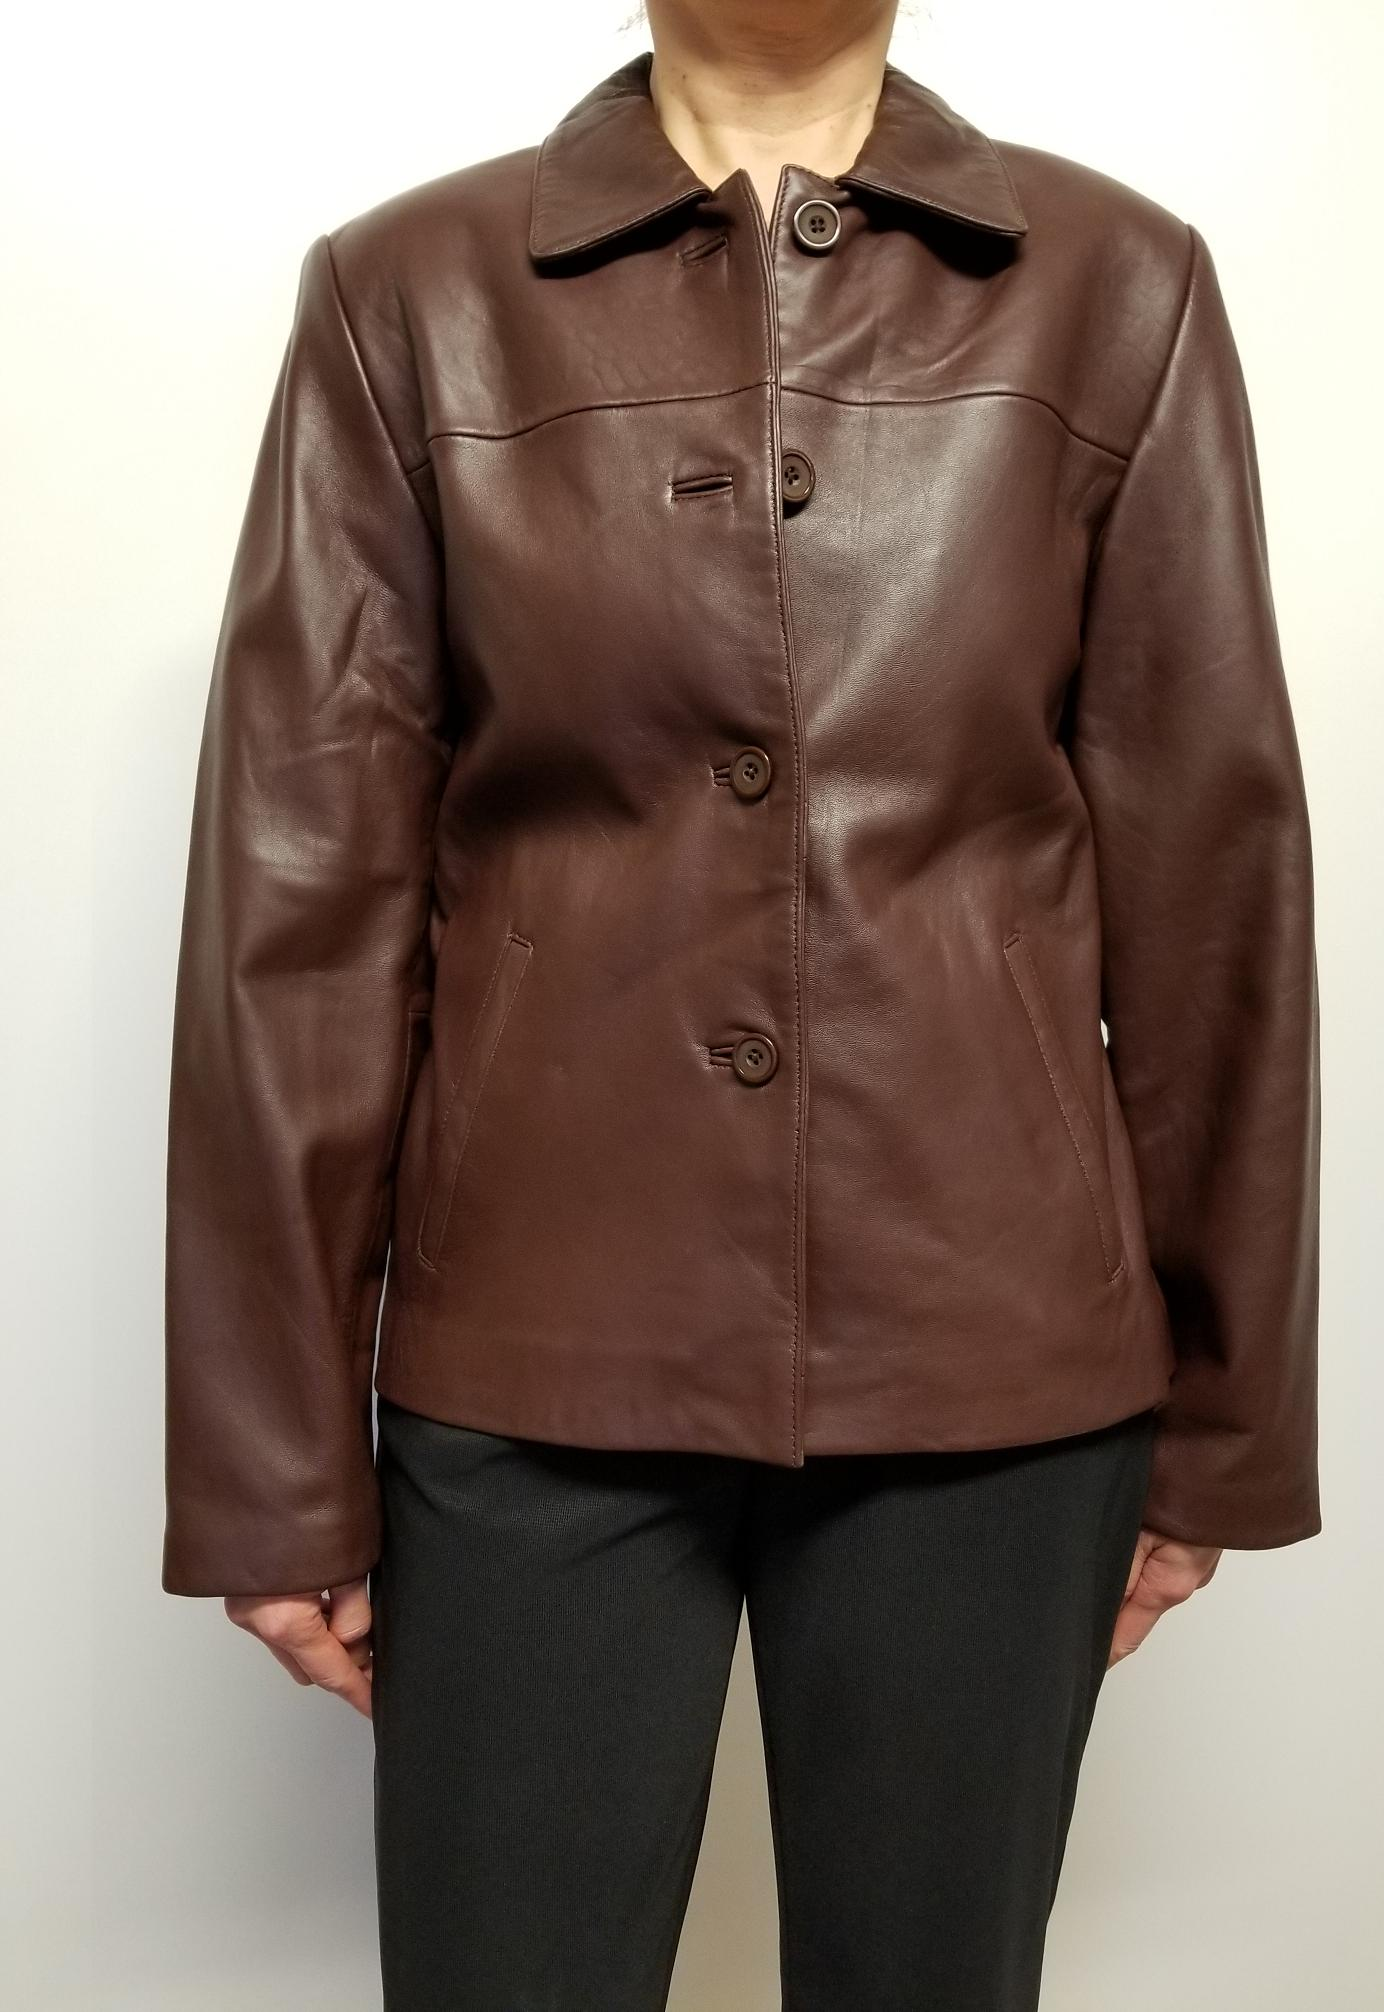 Women Lambskin Leather Jacket Button Front Closure